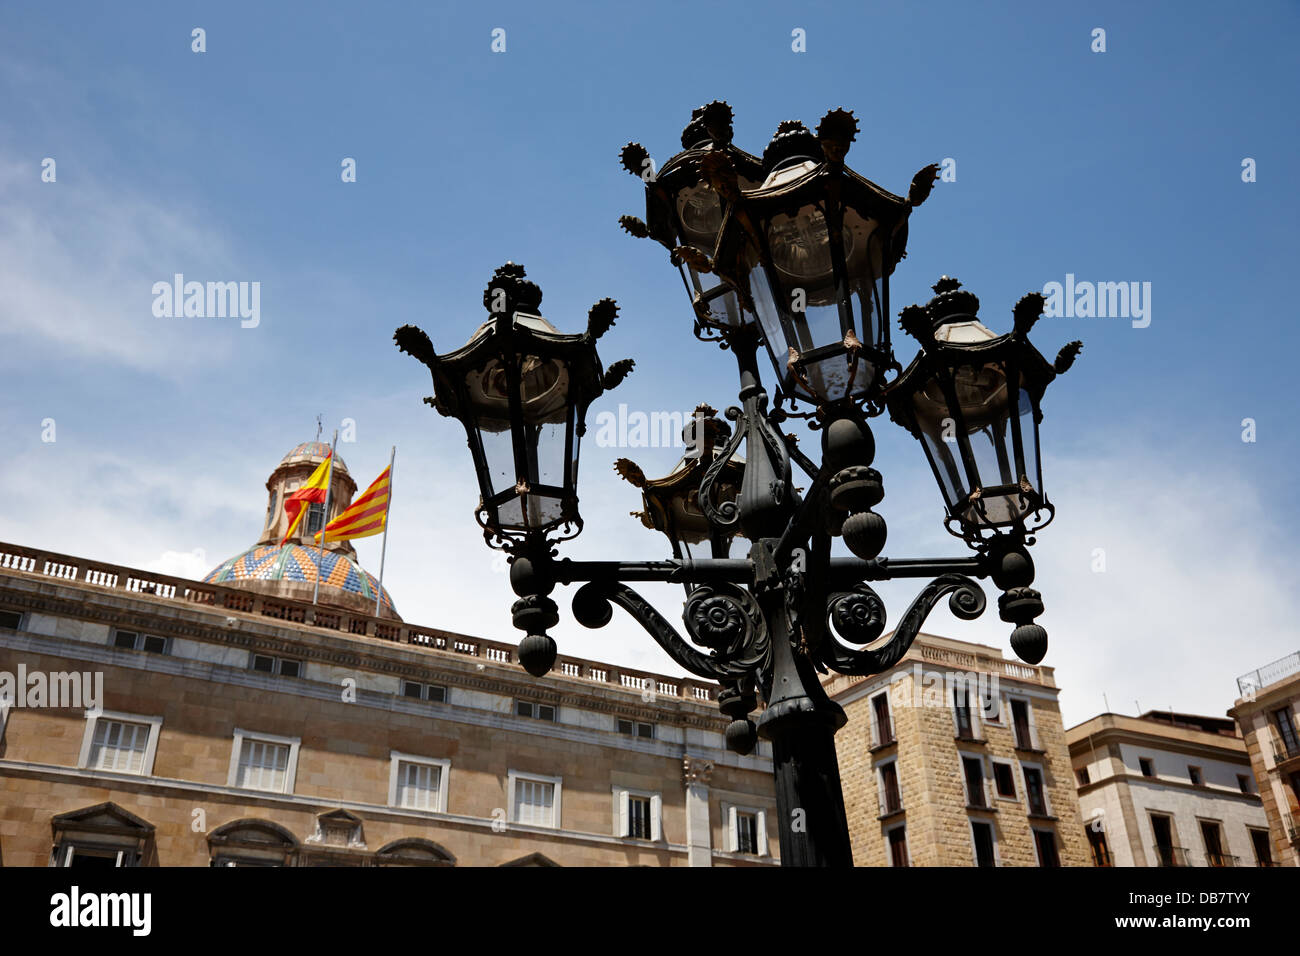 streetlight in sant jaume square Barcelona Catalonia Spain - Stock Image